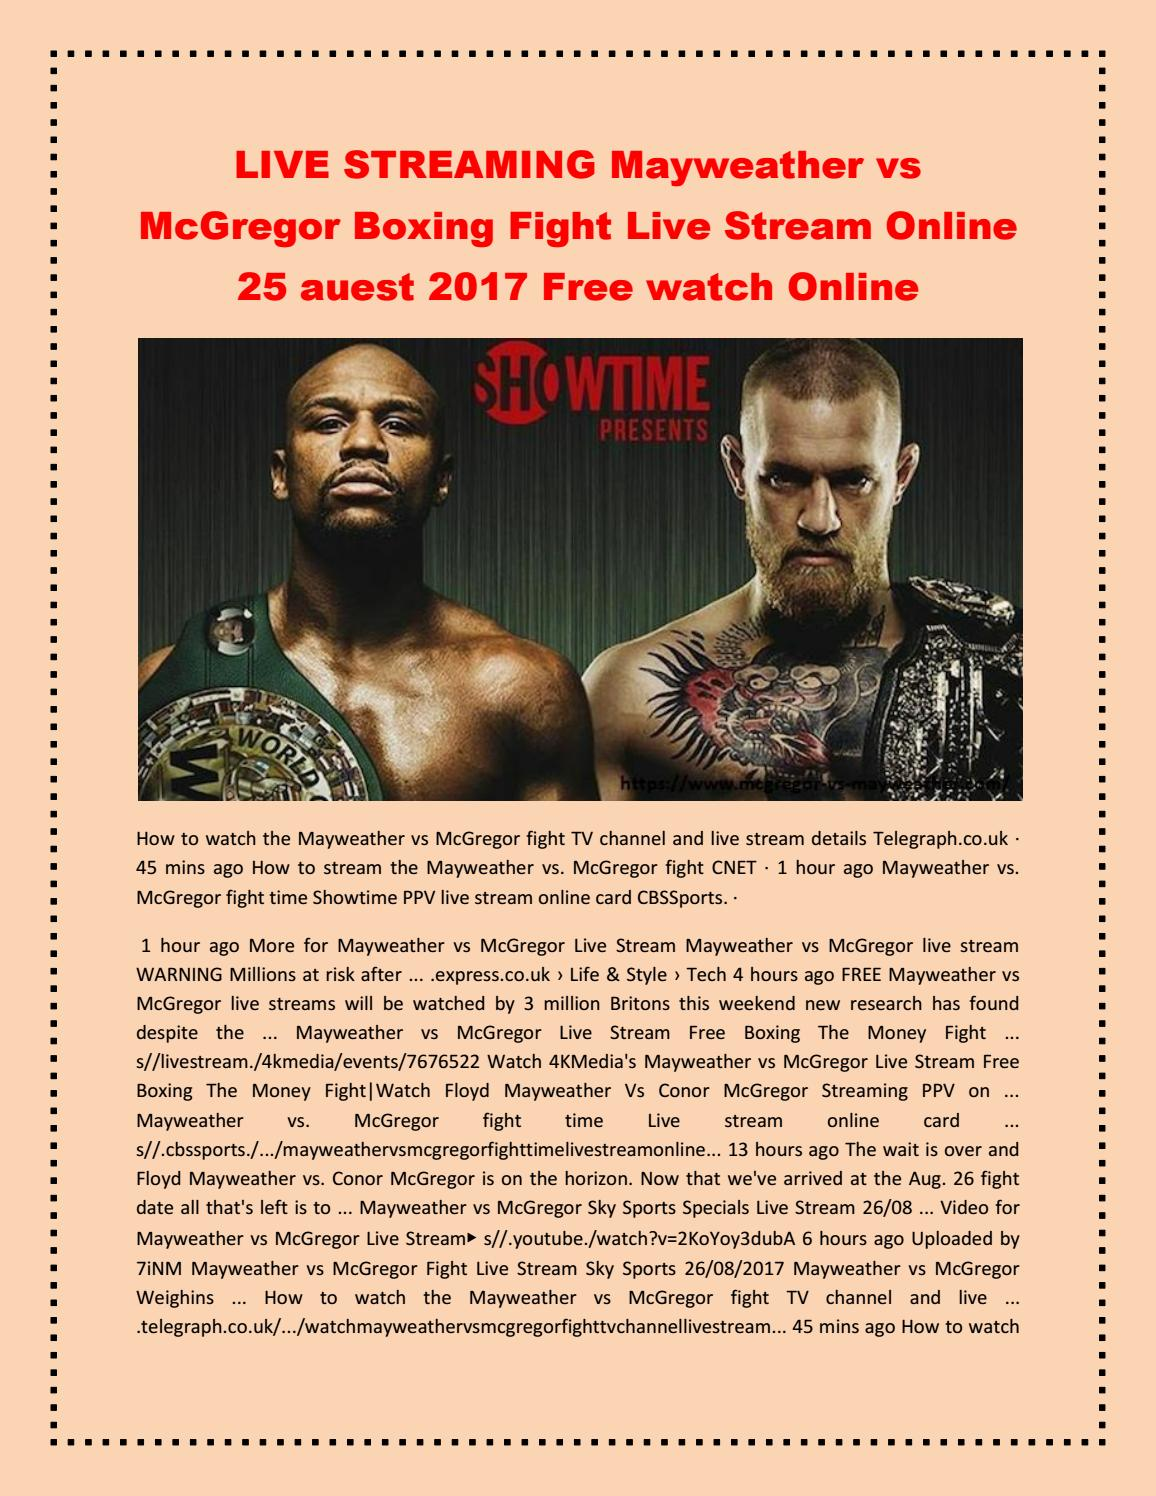 live stream mayweather vs mcgregor free